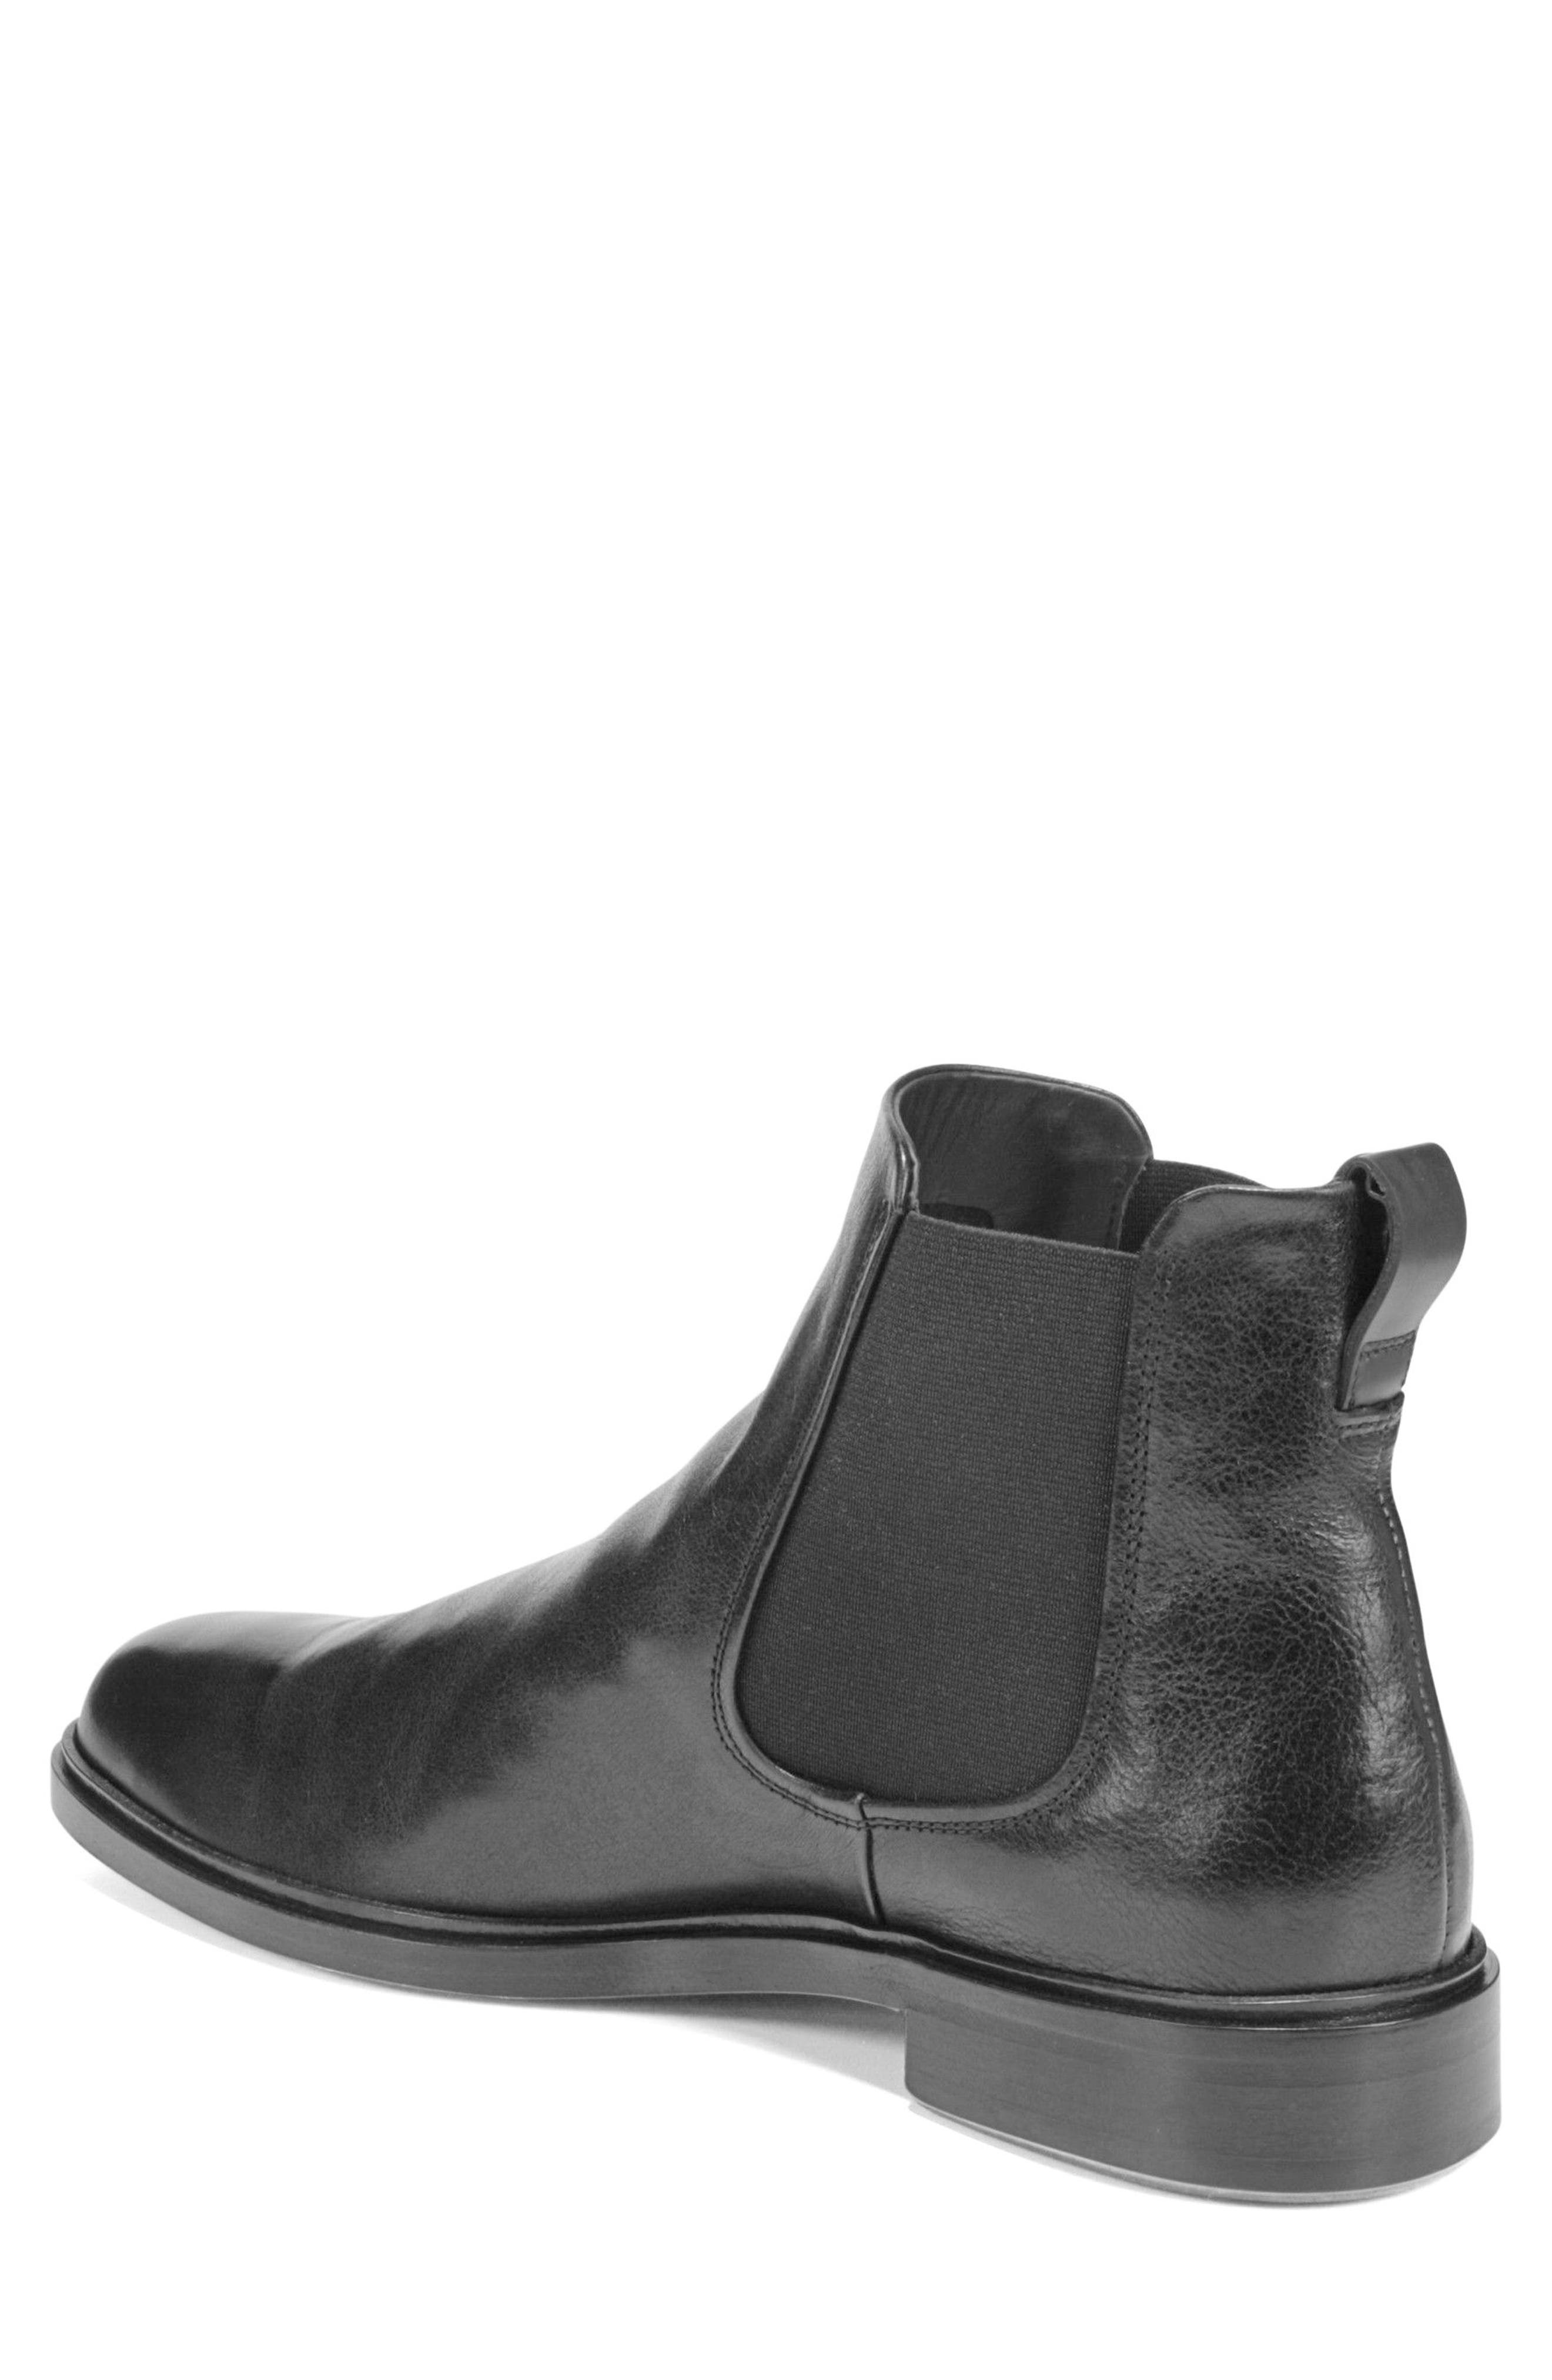 VINCE,                             Burroughs Chelsea Boot,                             Alternate thumbnail 2, color,                             BLACK